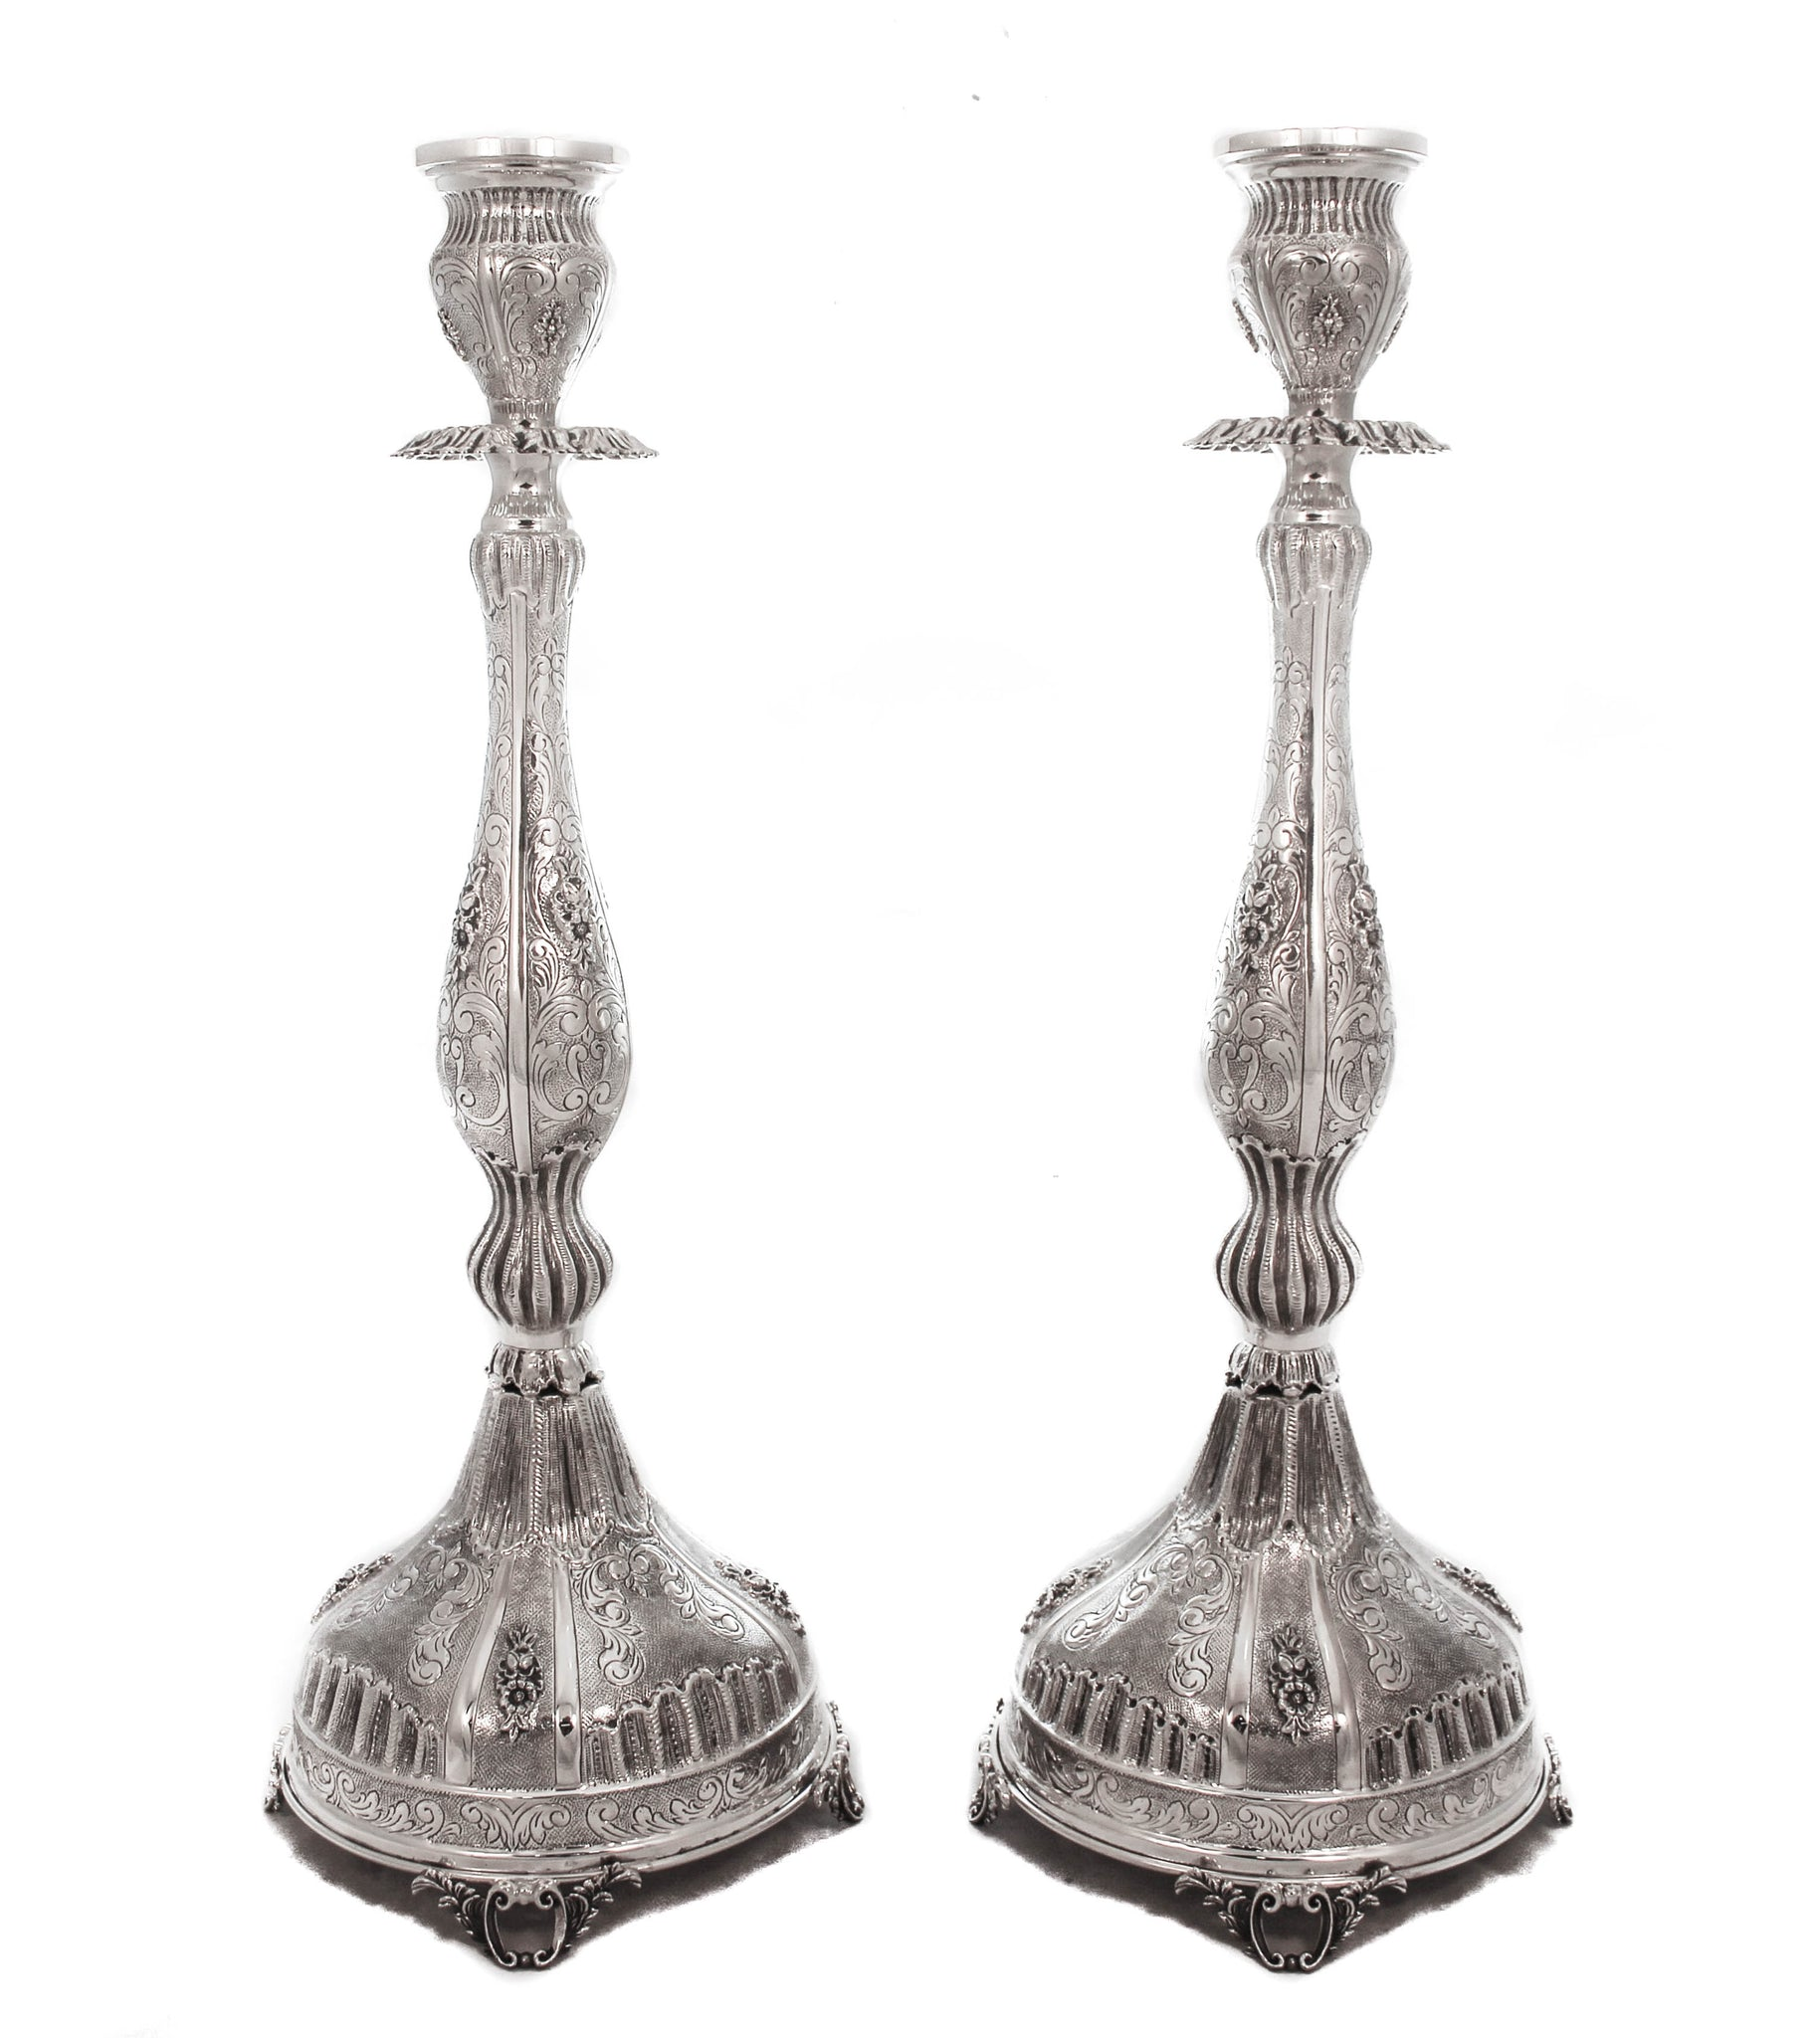 FINE 925 STERLING SILVER CHASED FLOWER ORNATE SWIRL CANDLESTICKS